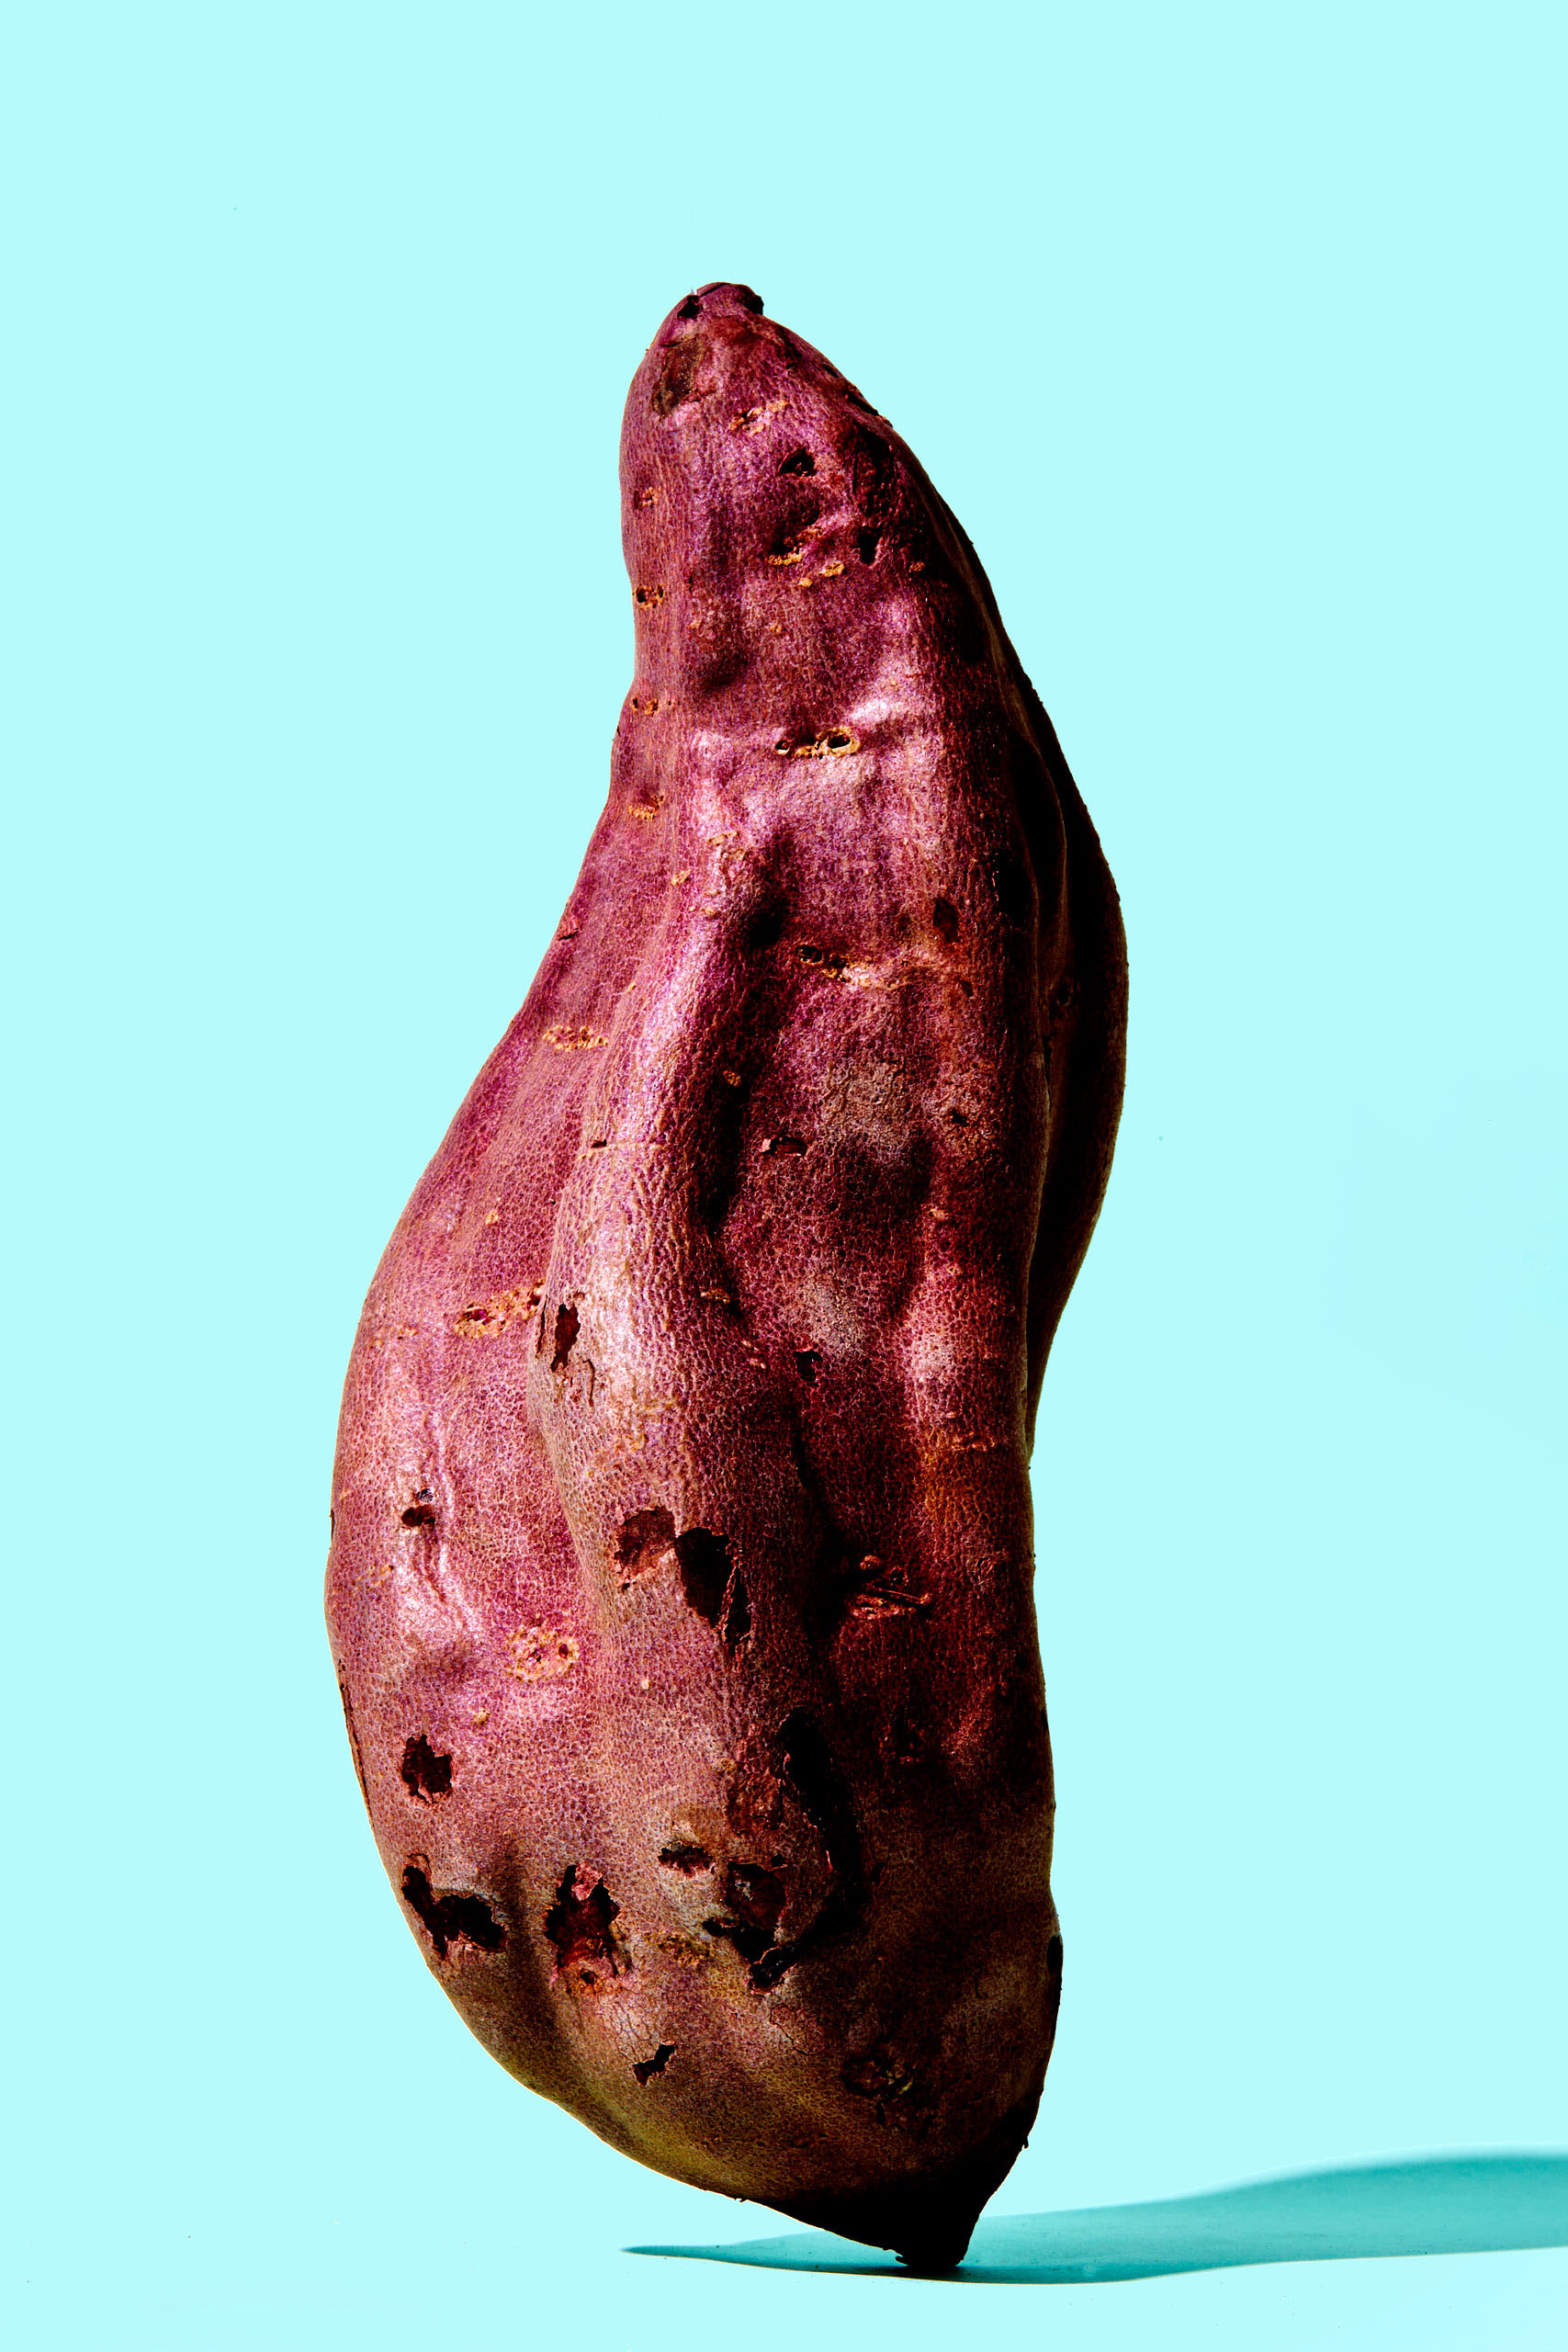 healthiest foods, health food, diet, nutrition, time.com stock, sweet potato, root vegetables